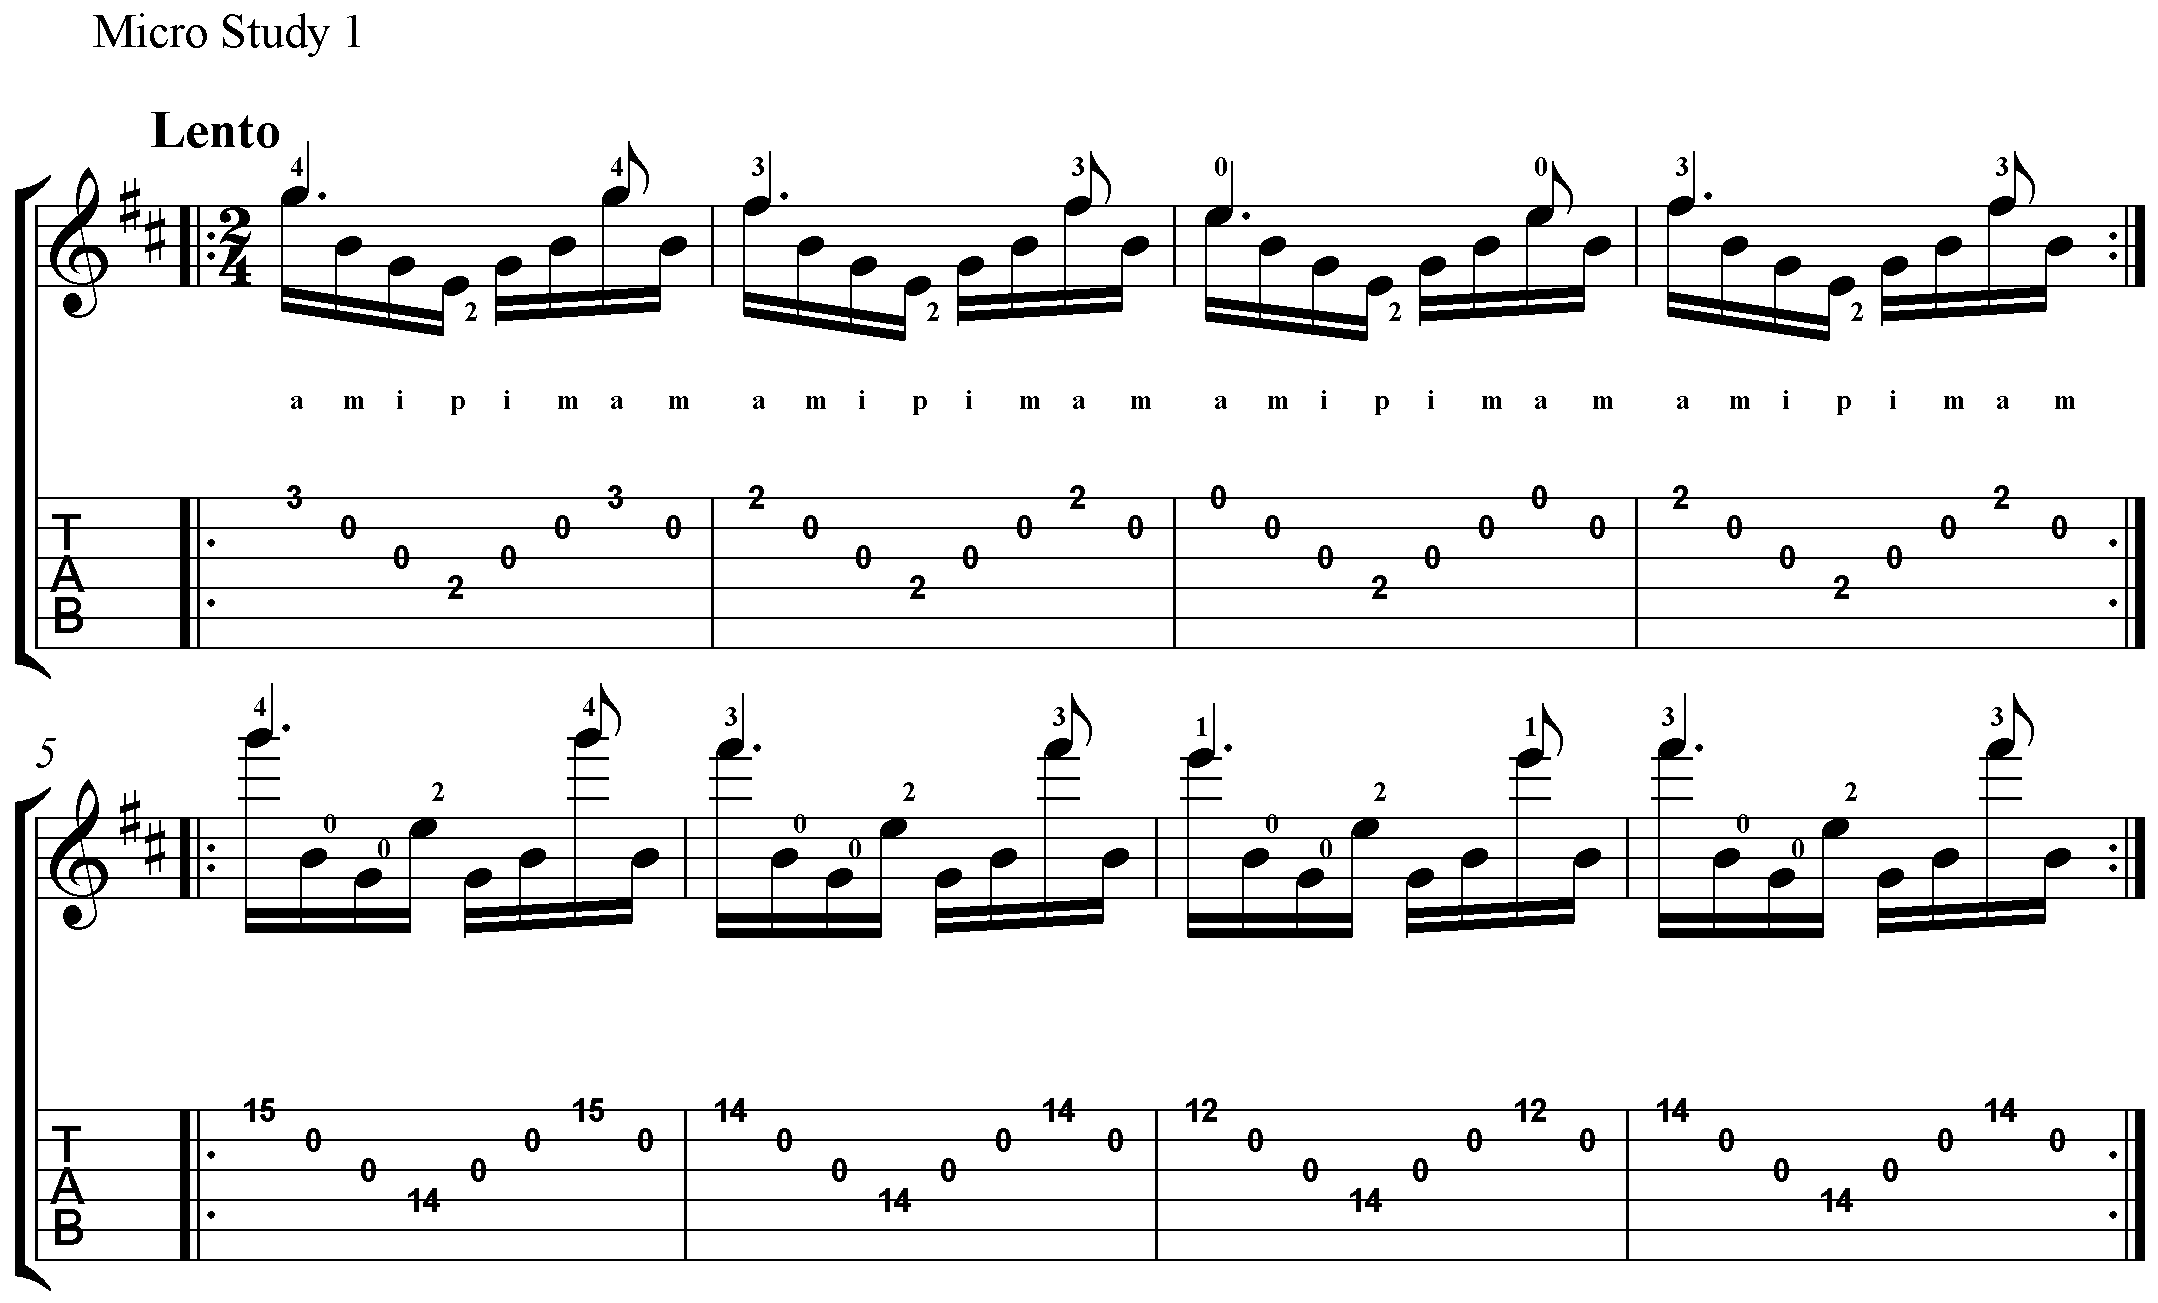 Method: Mastering Barrios' Arpeggios and more with Prelude